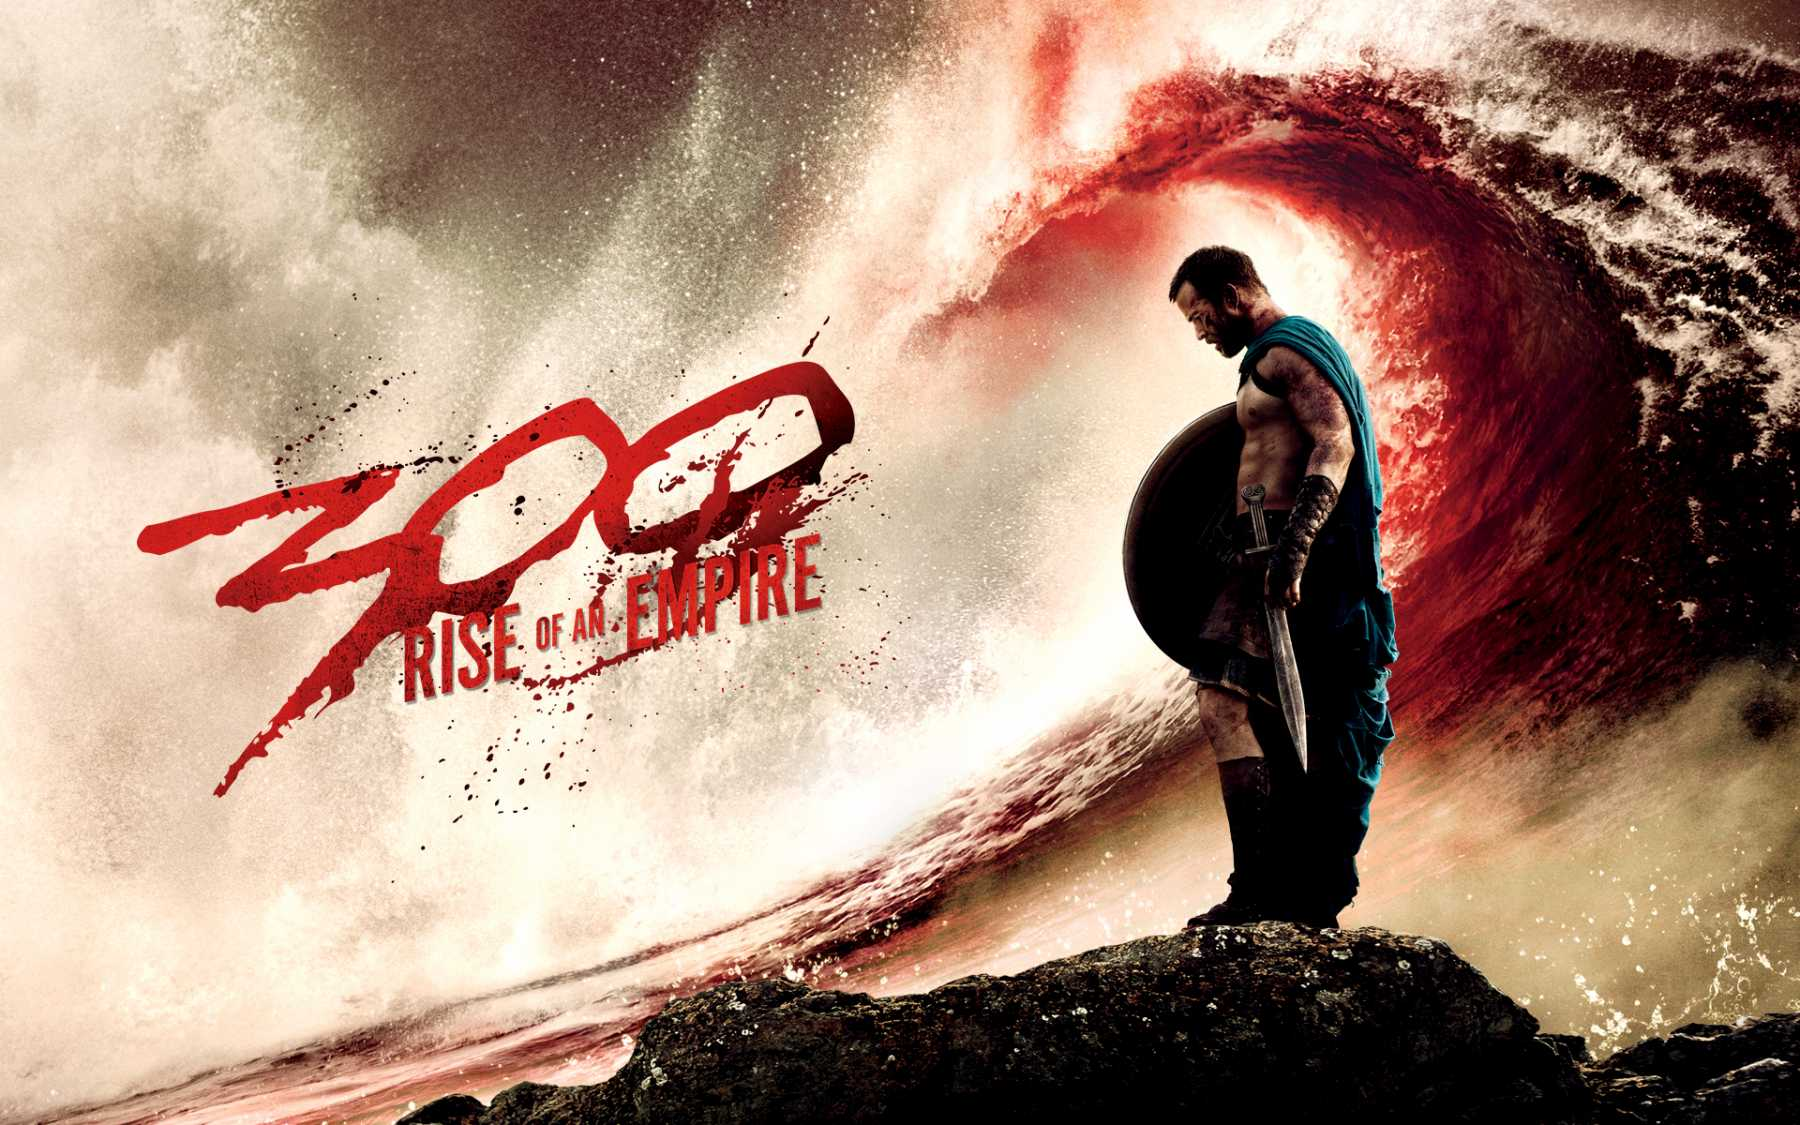 New 300: Rise Of An Empire Posters Revealed